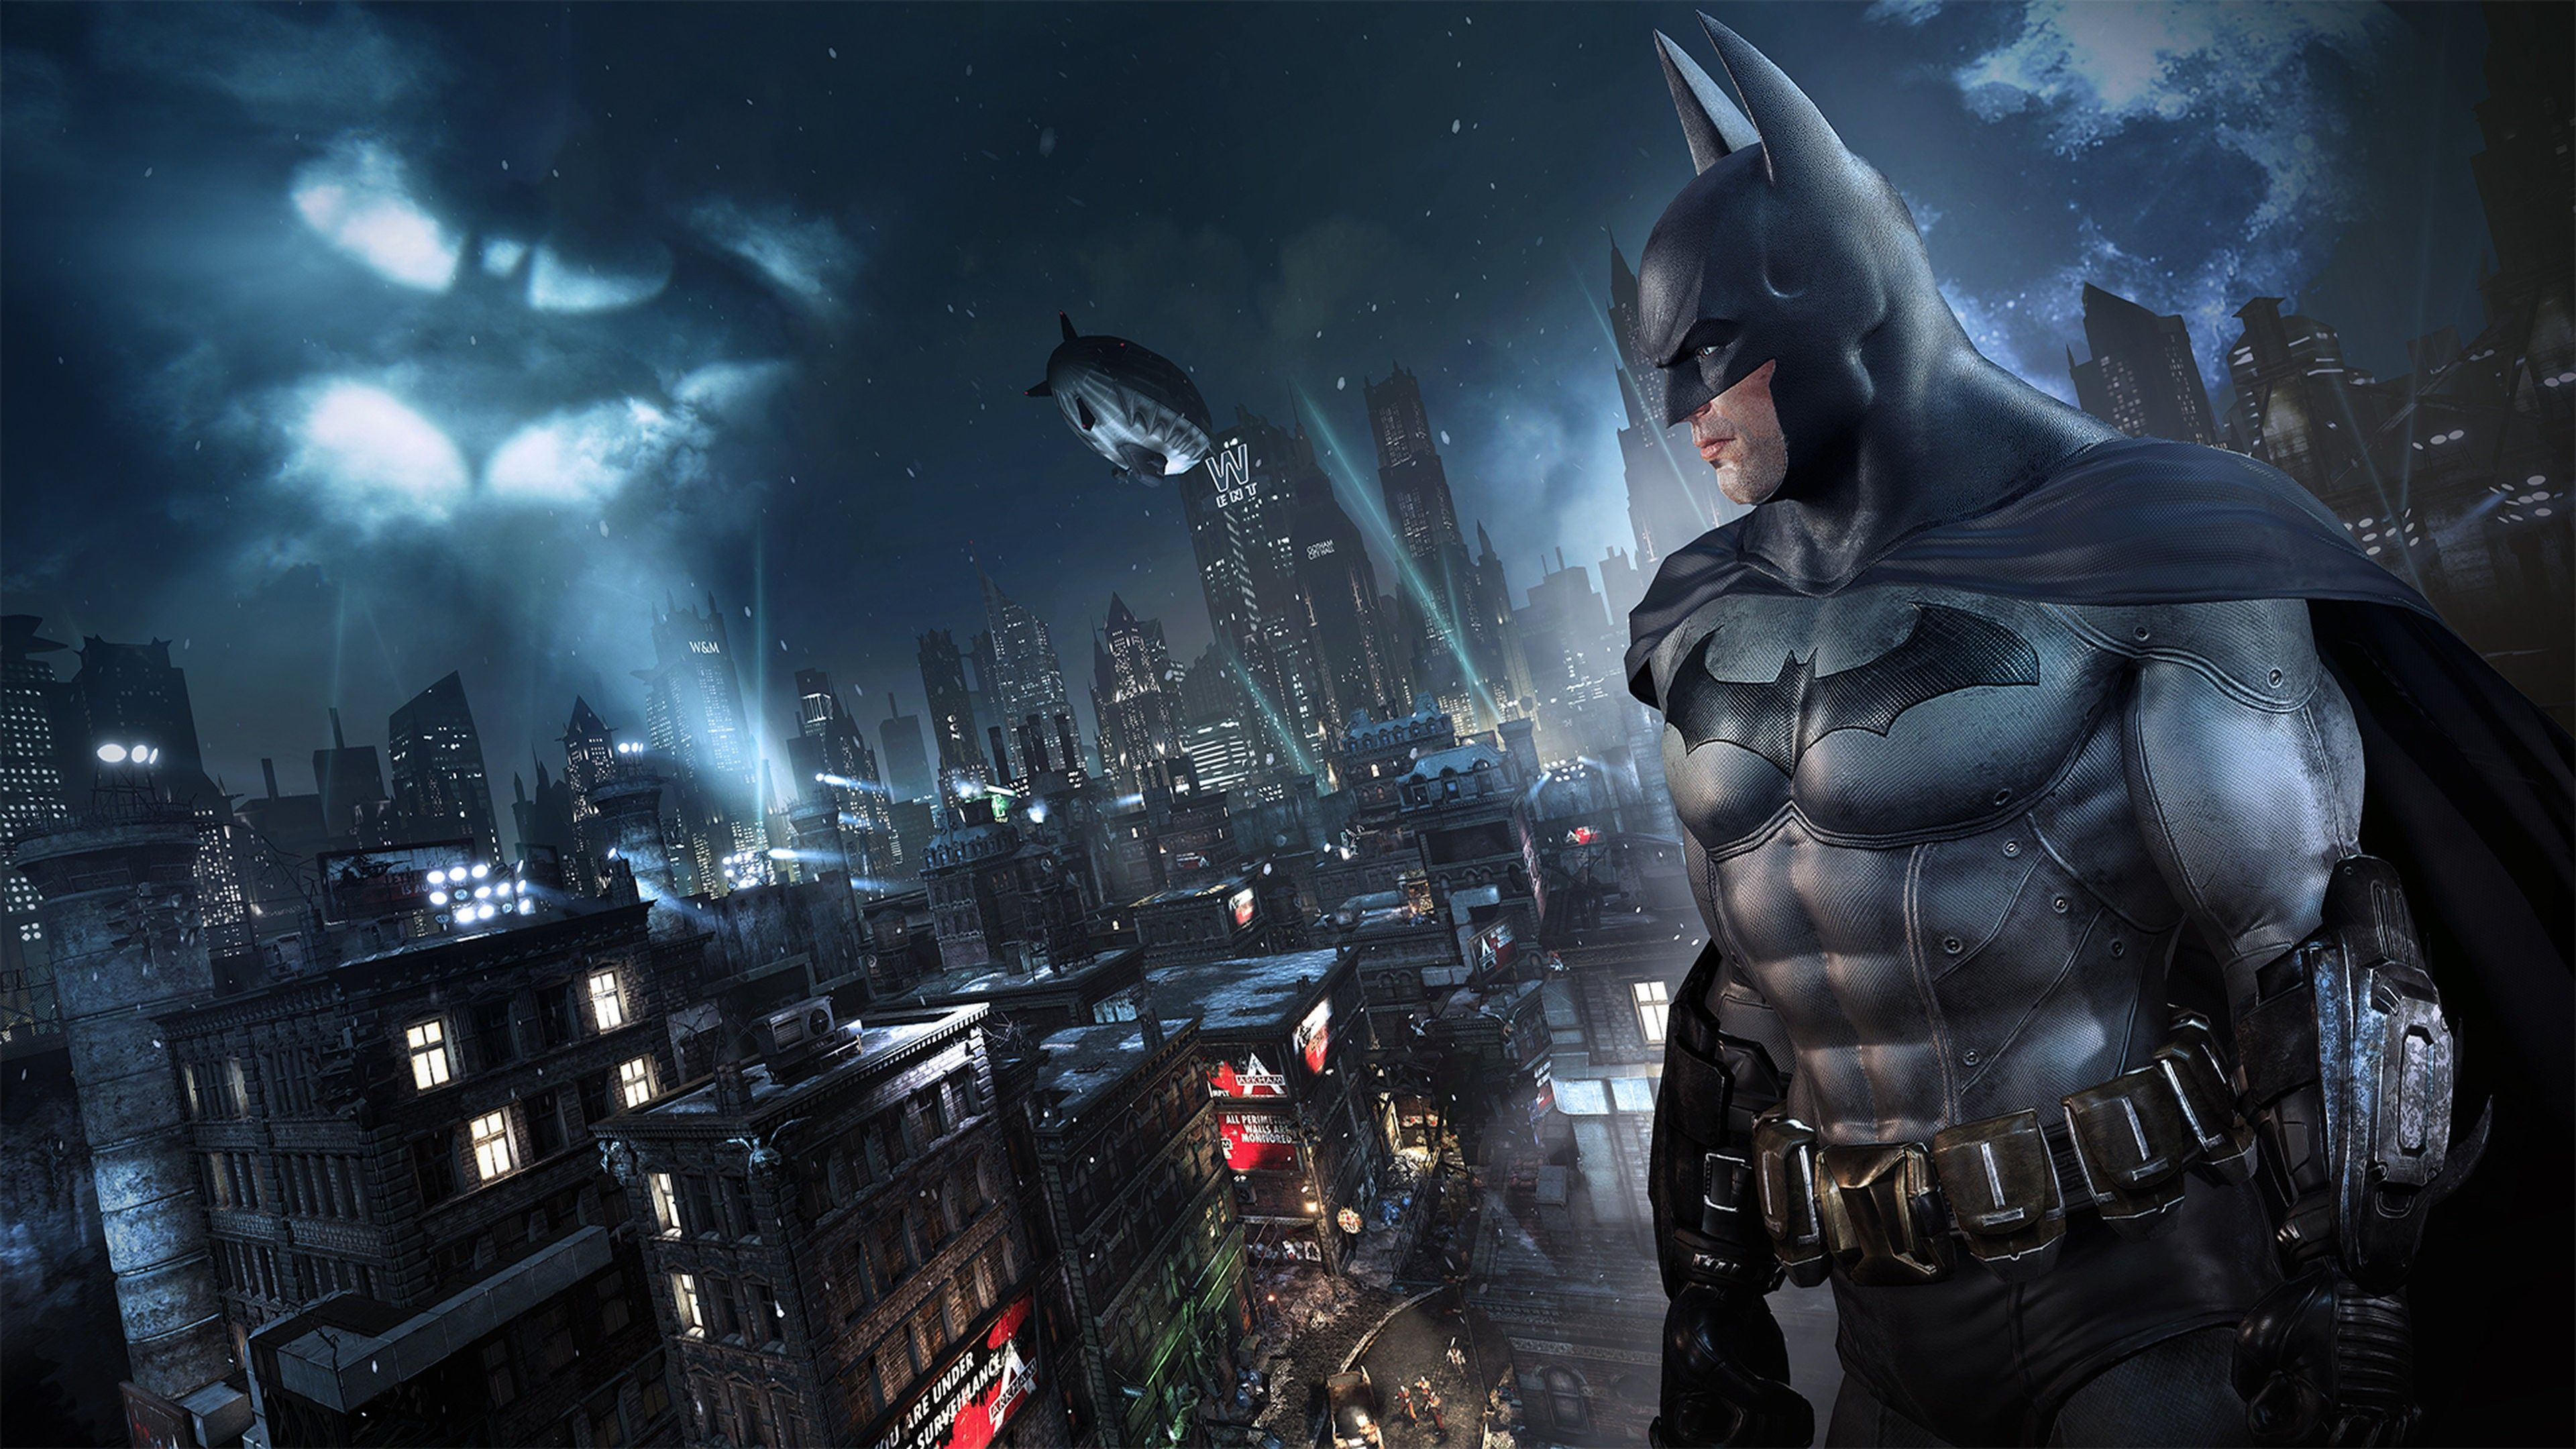 Batman Arkham Knight 4k Wallpapers Top Free Batman Arkham Knight